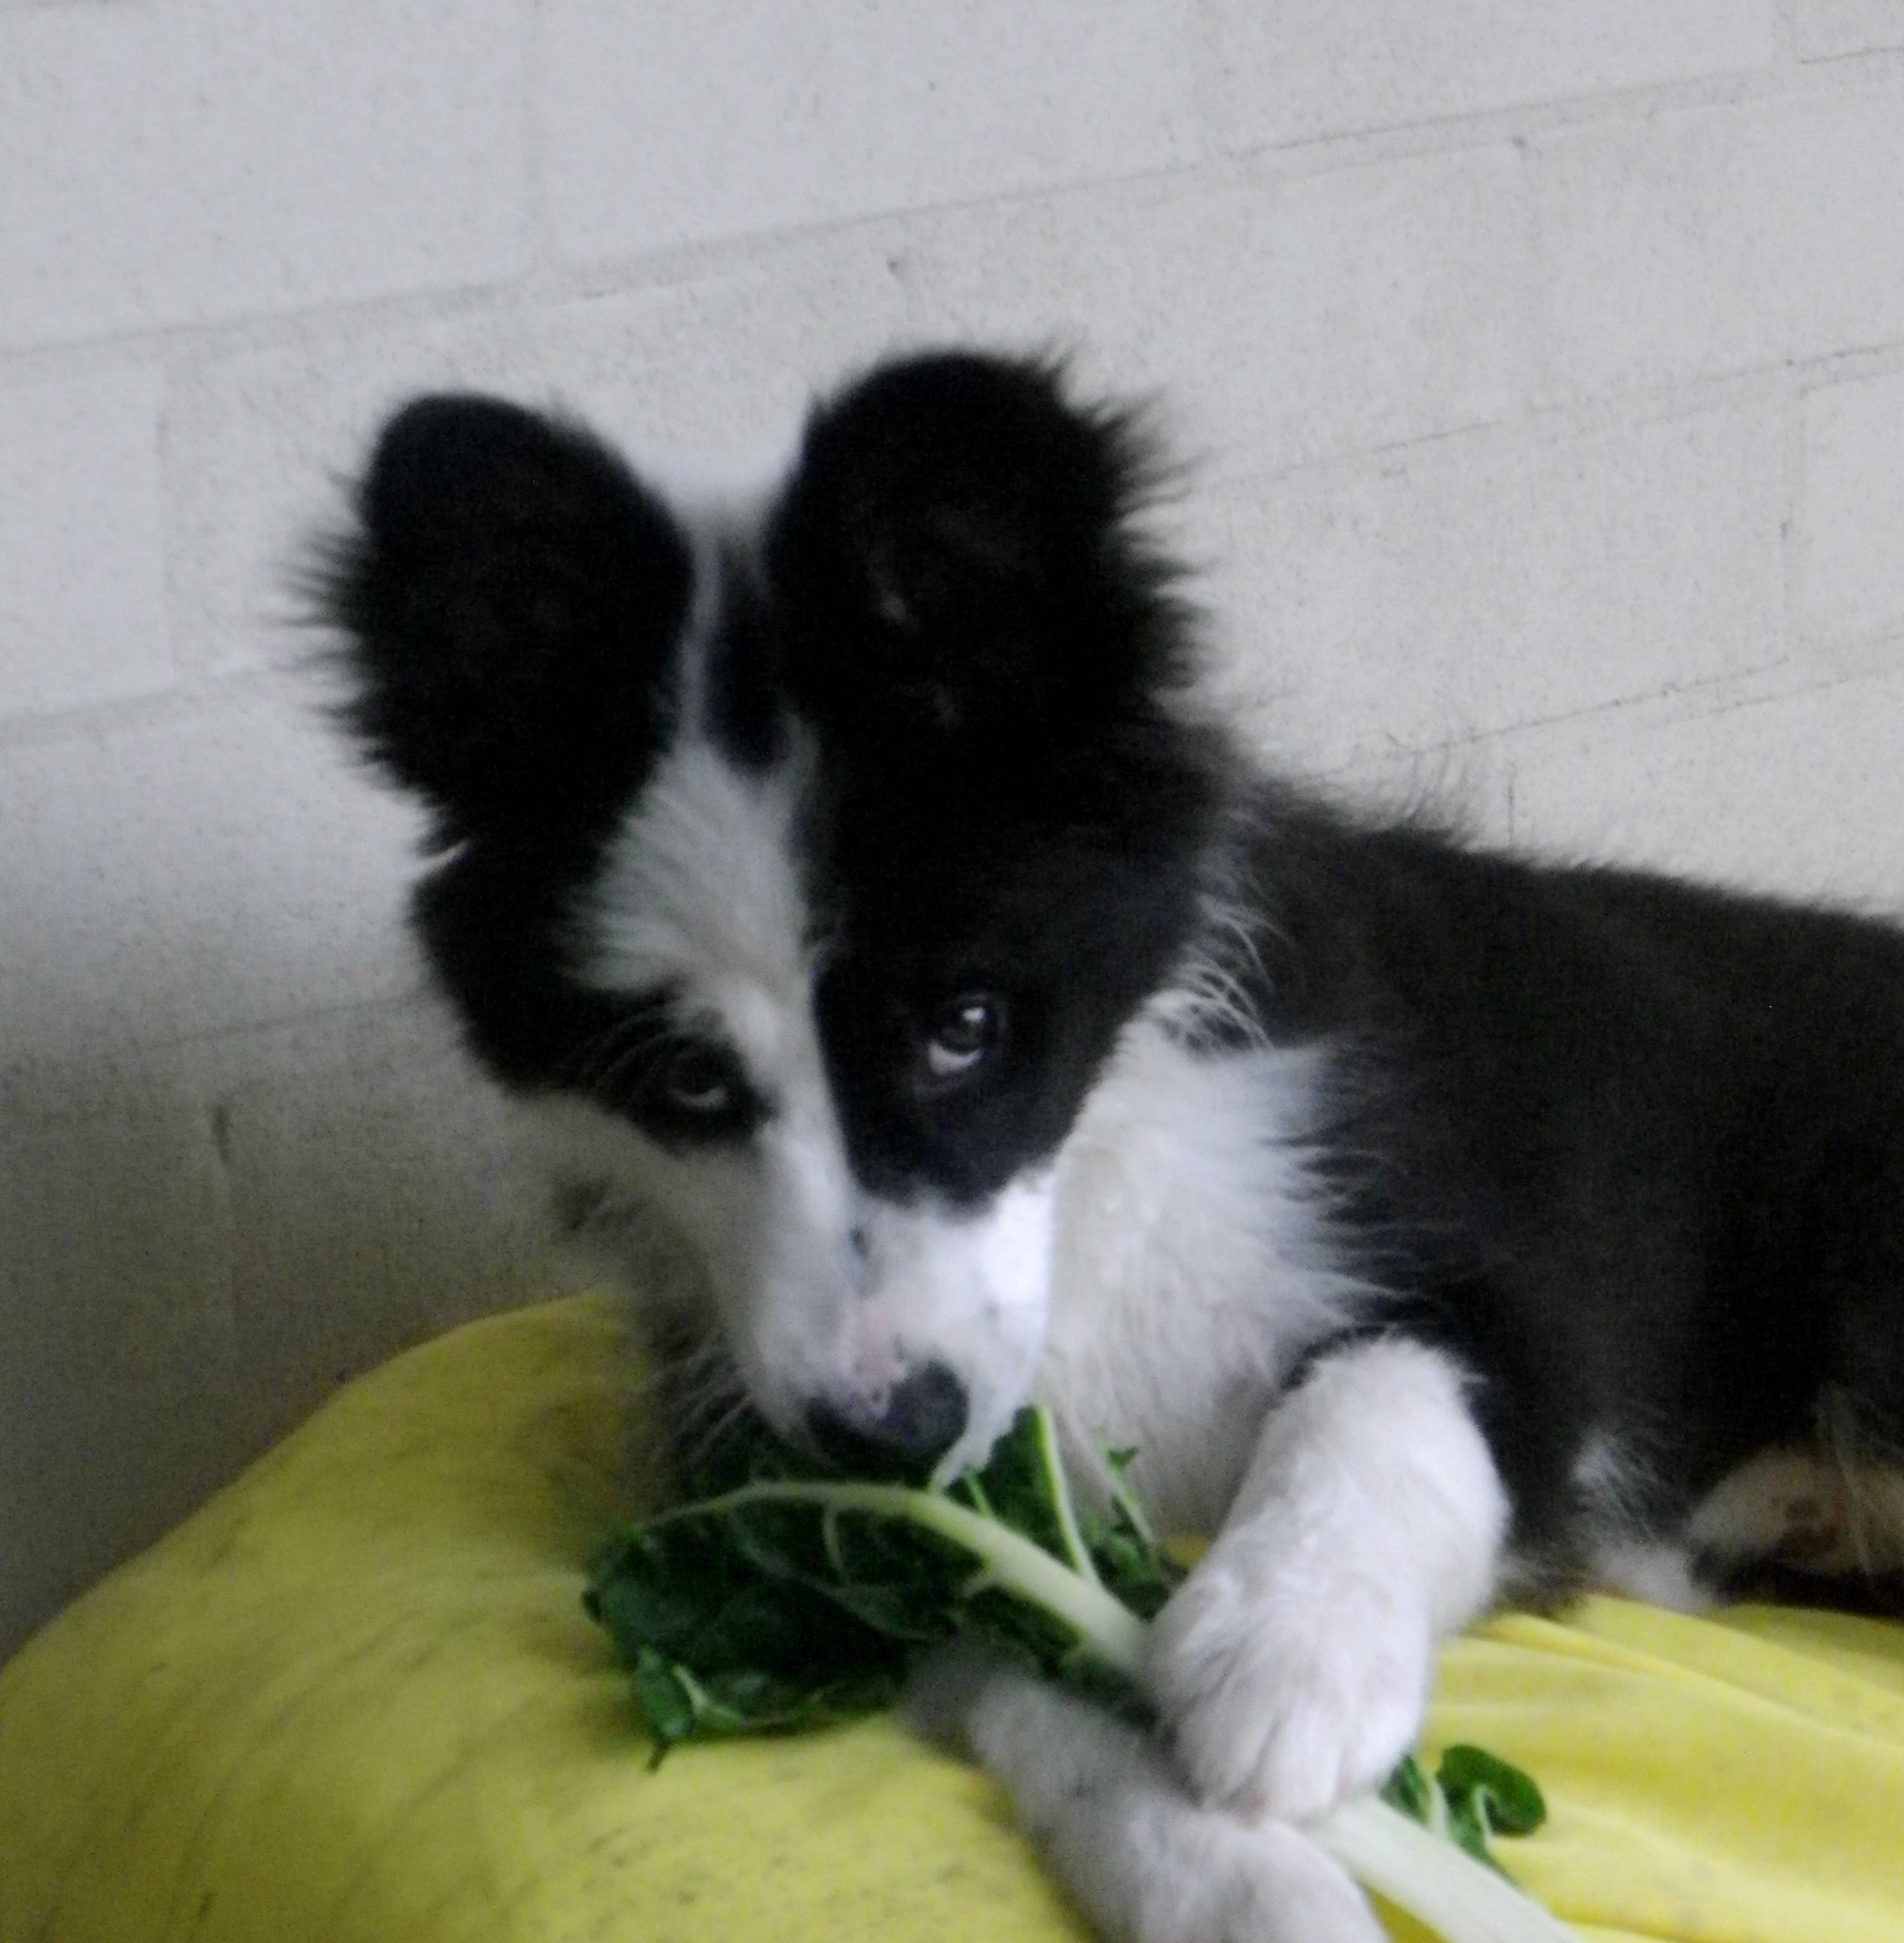 our Border Collie likes green leaves be it spinach or lettuce